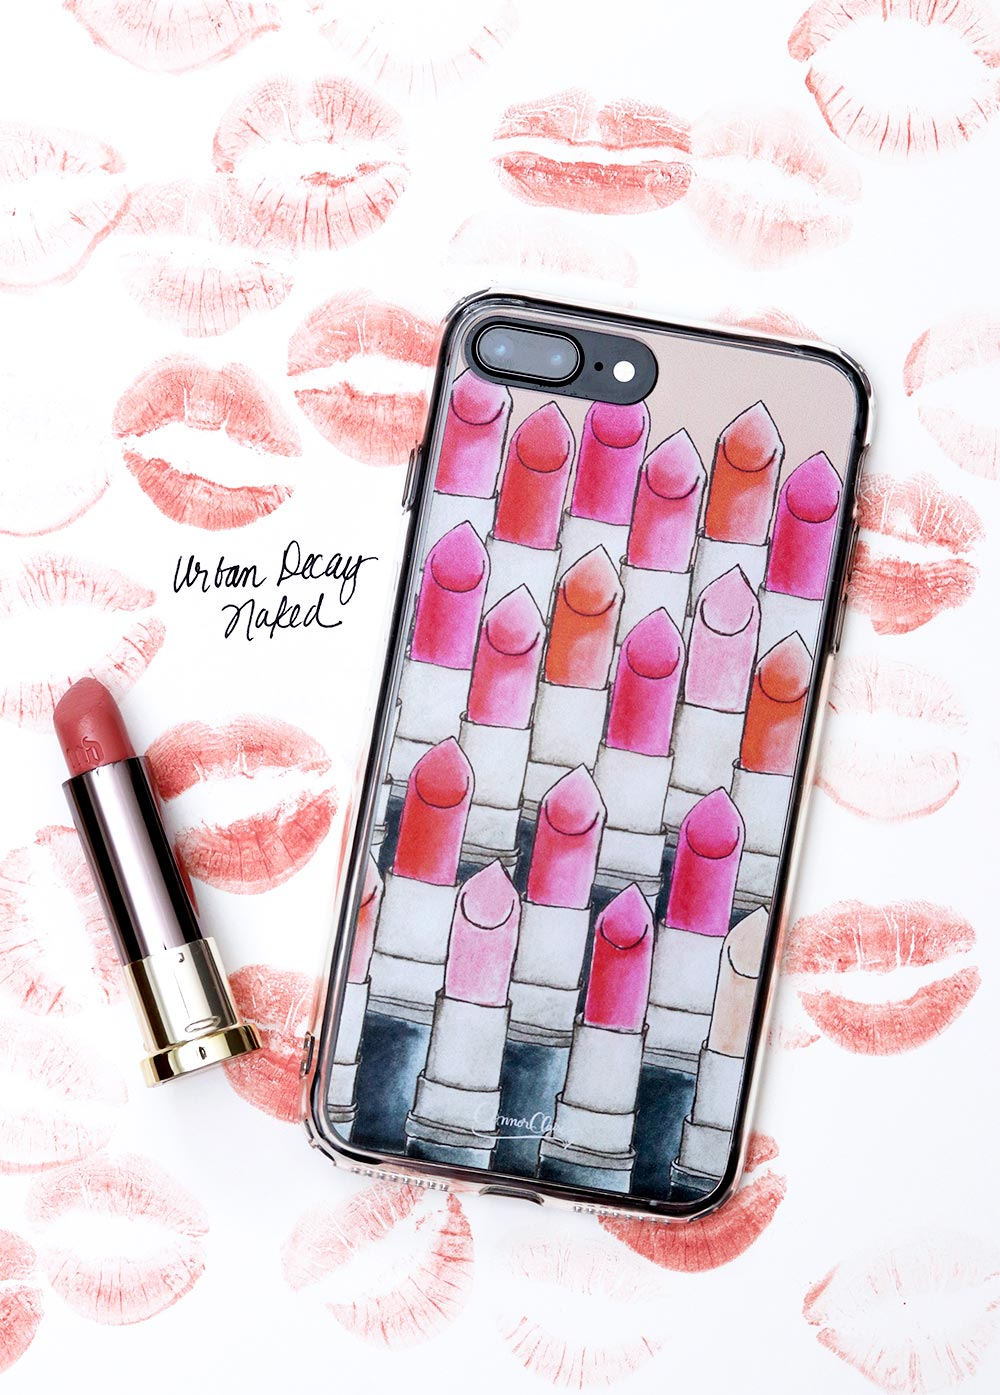 urban decay naked lipstick attention lipstick iphone case final